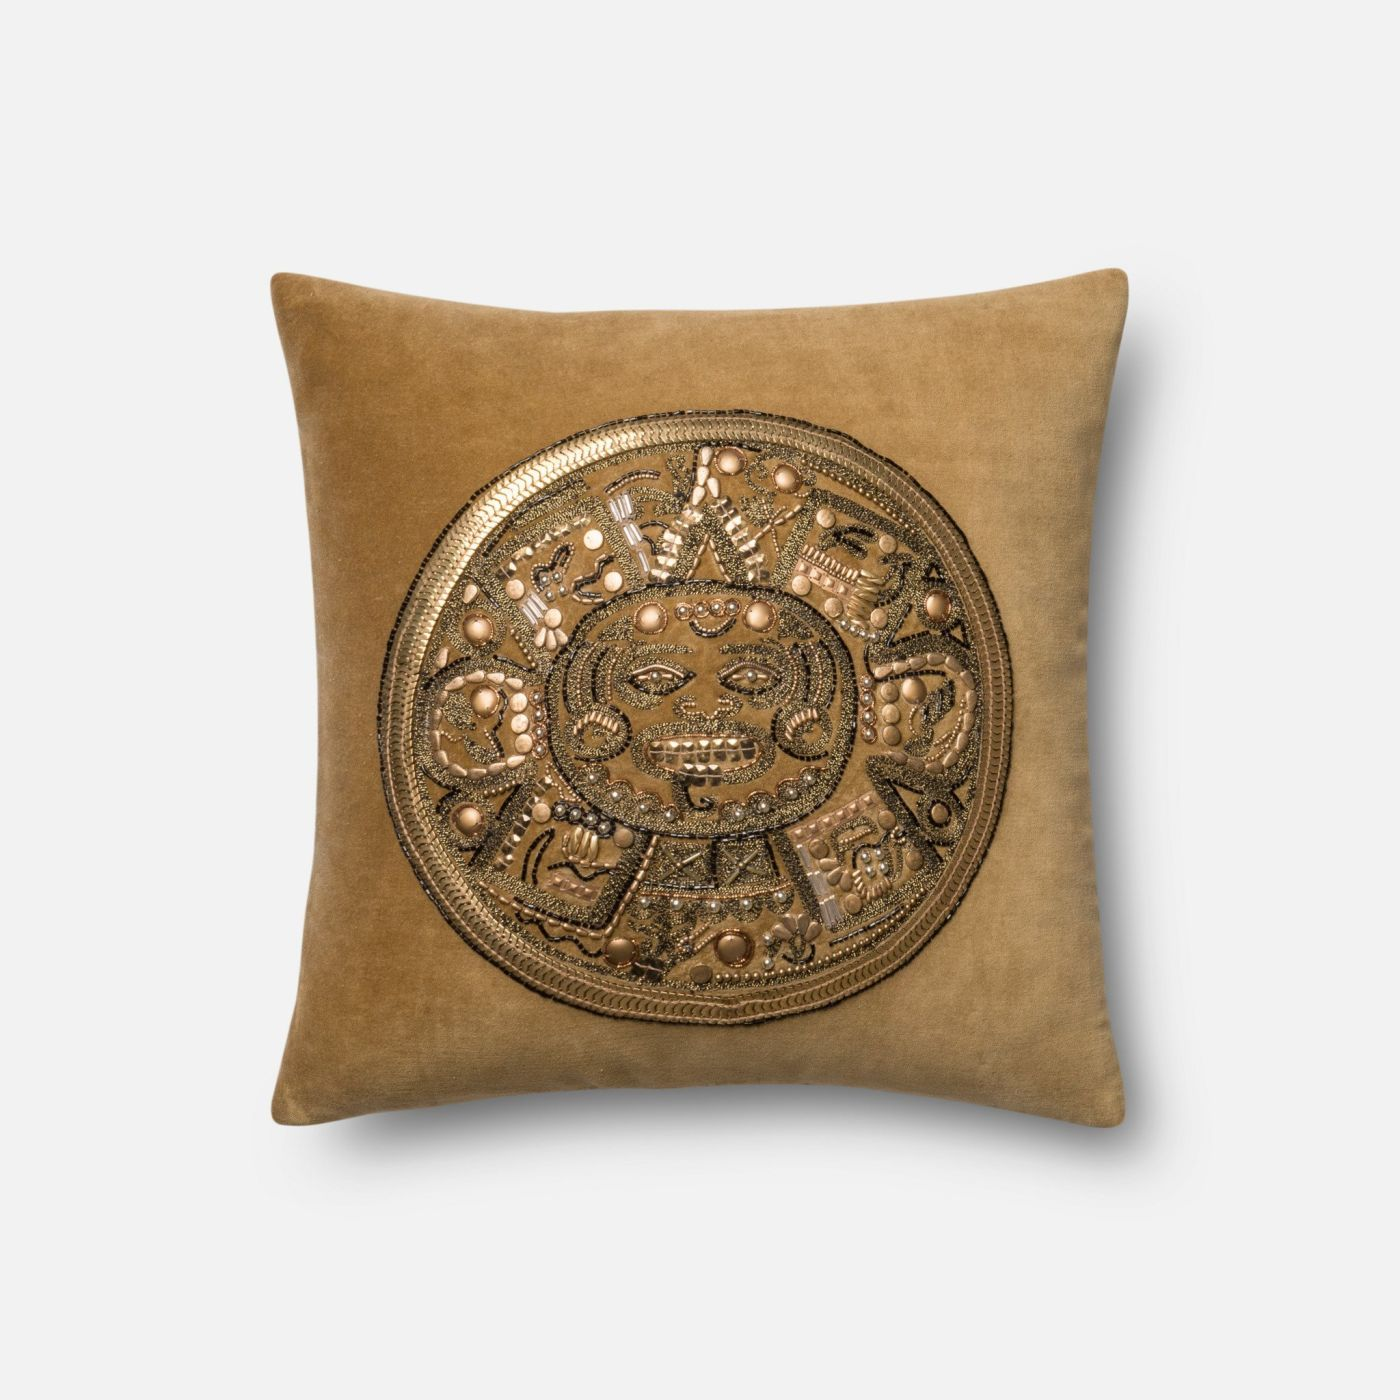 Throw Pillow Warehouse : Loloi Rugs Loloi Gold / Gold Decorative Throw Pillow (P0437) DSETP0437GOGOPIL1. Only $129.00 at ...